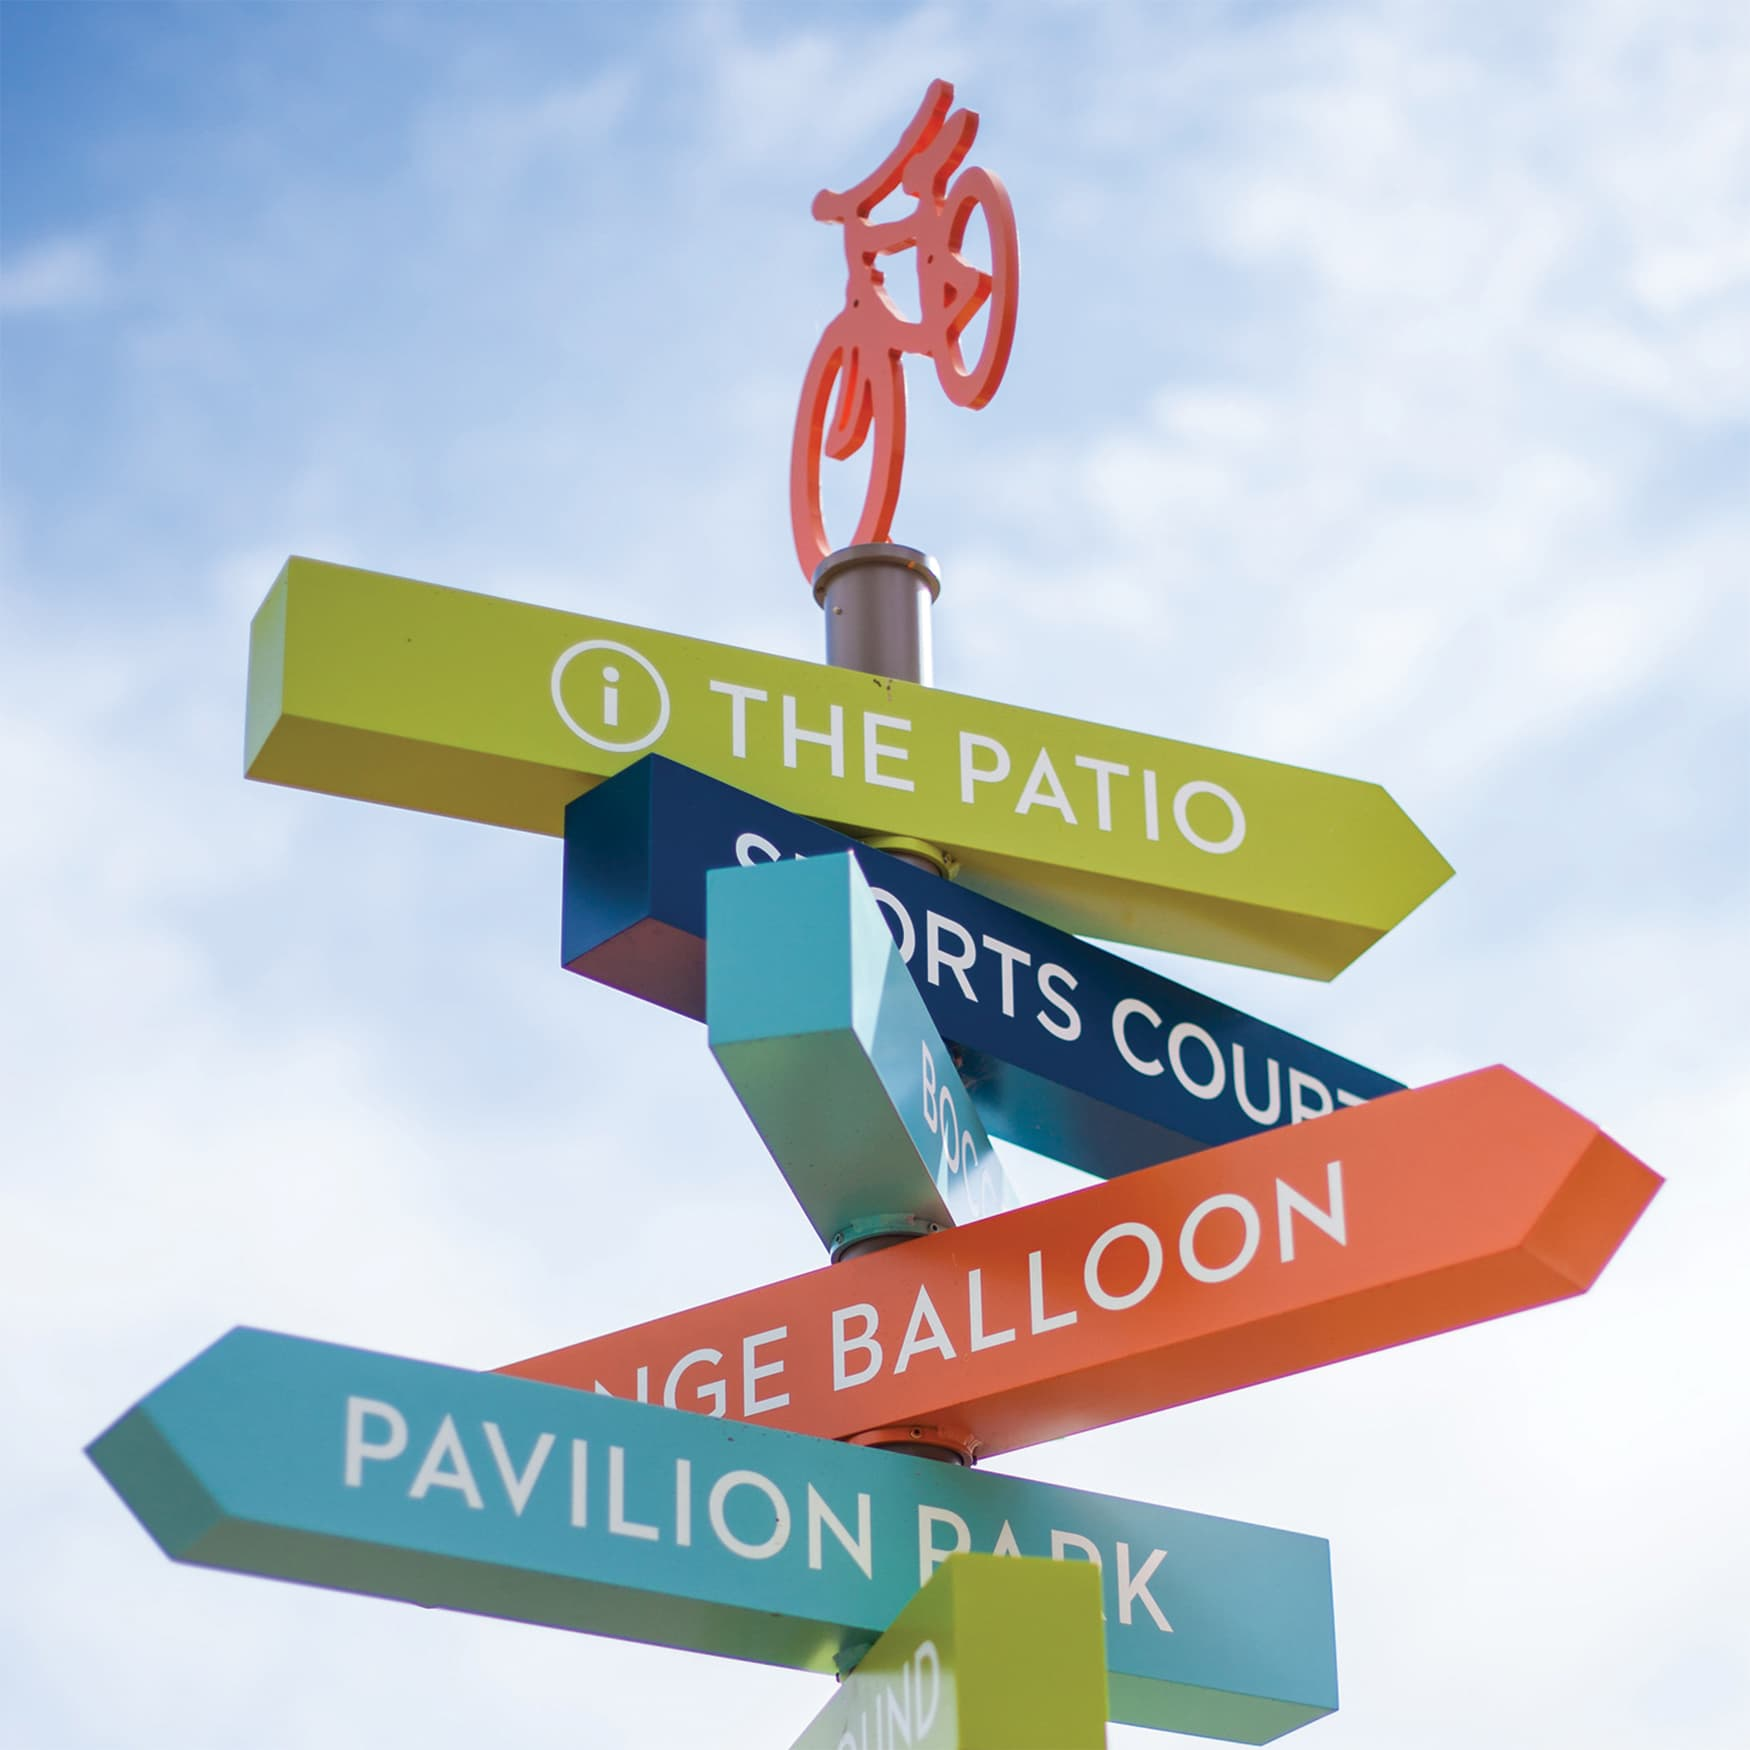 Fun, multi-colored flag directional wayfinding signage